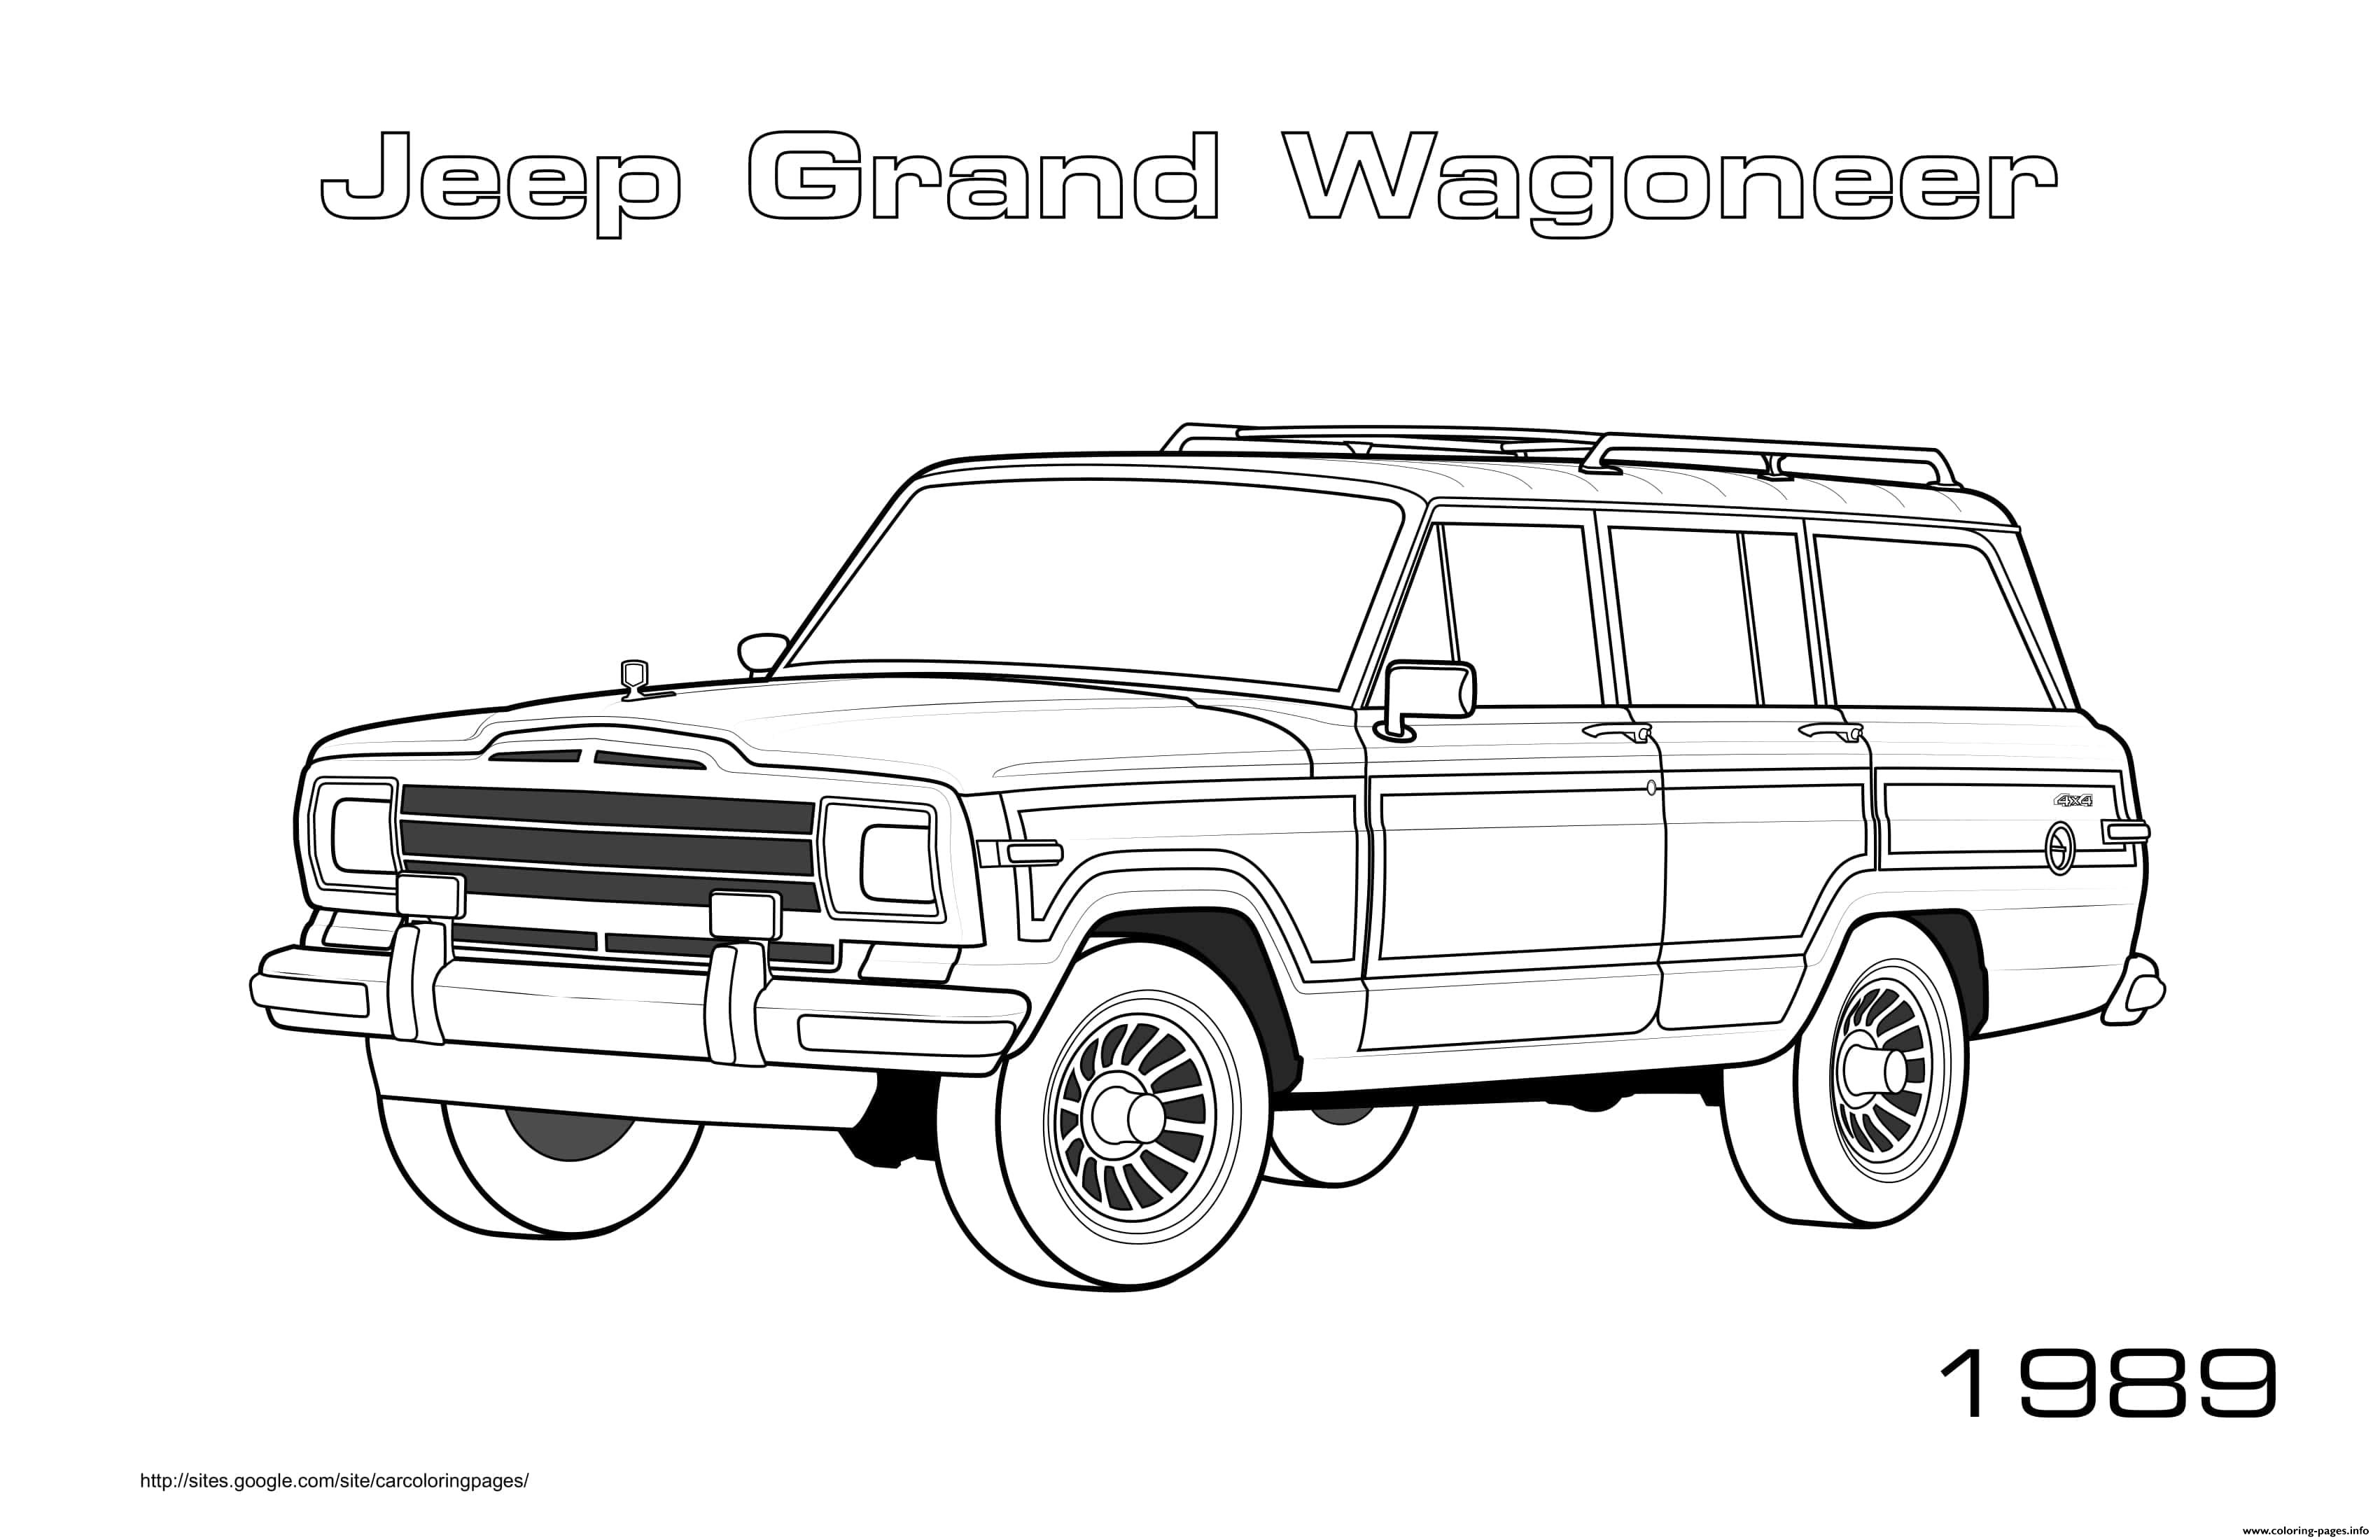 Jeep Grand Wagoneer 1989 Coloring Pages Printable